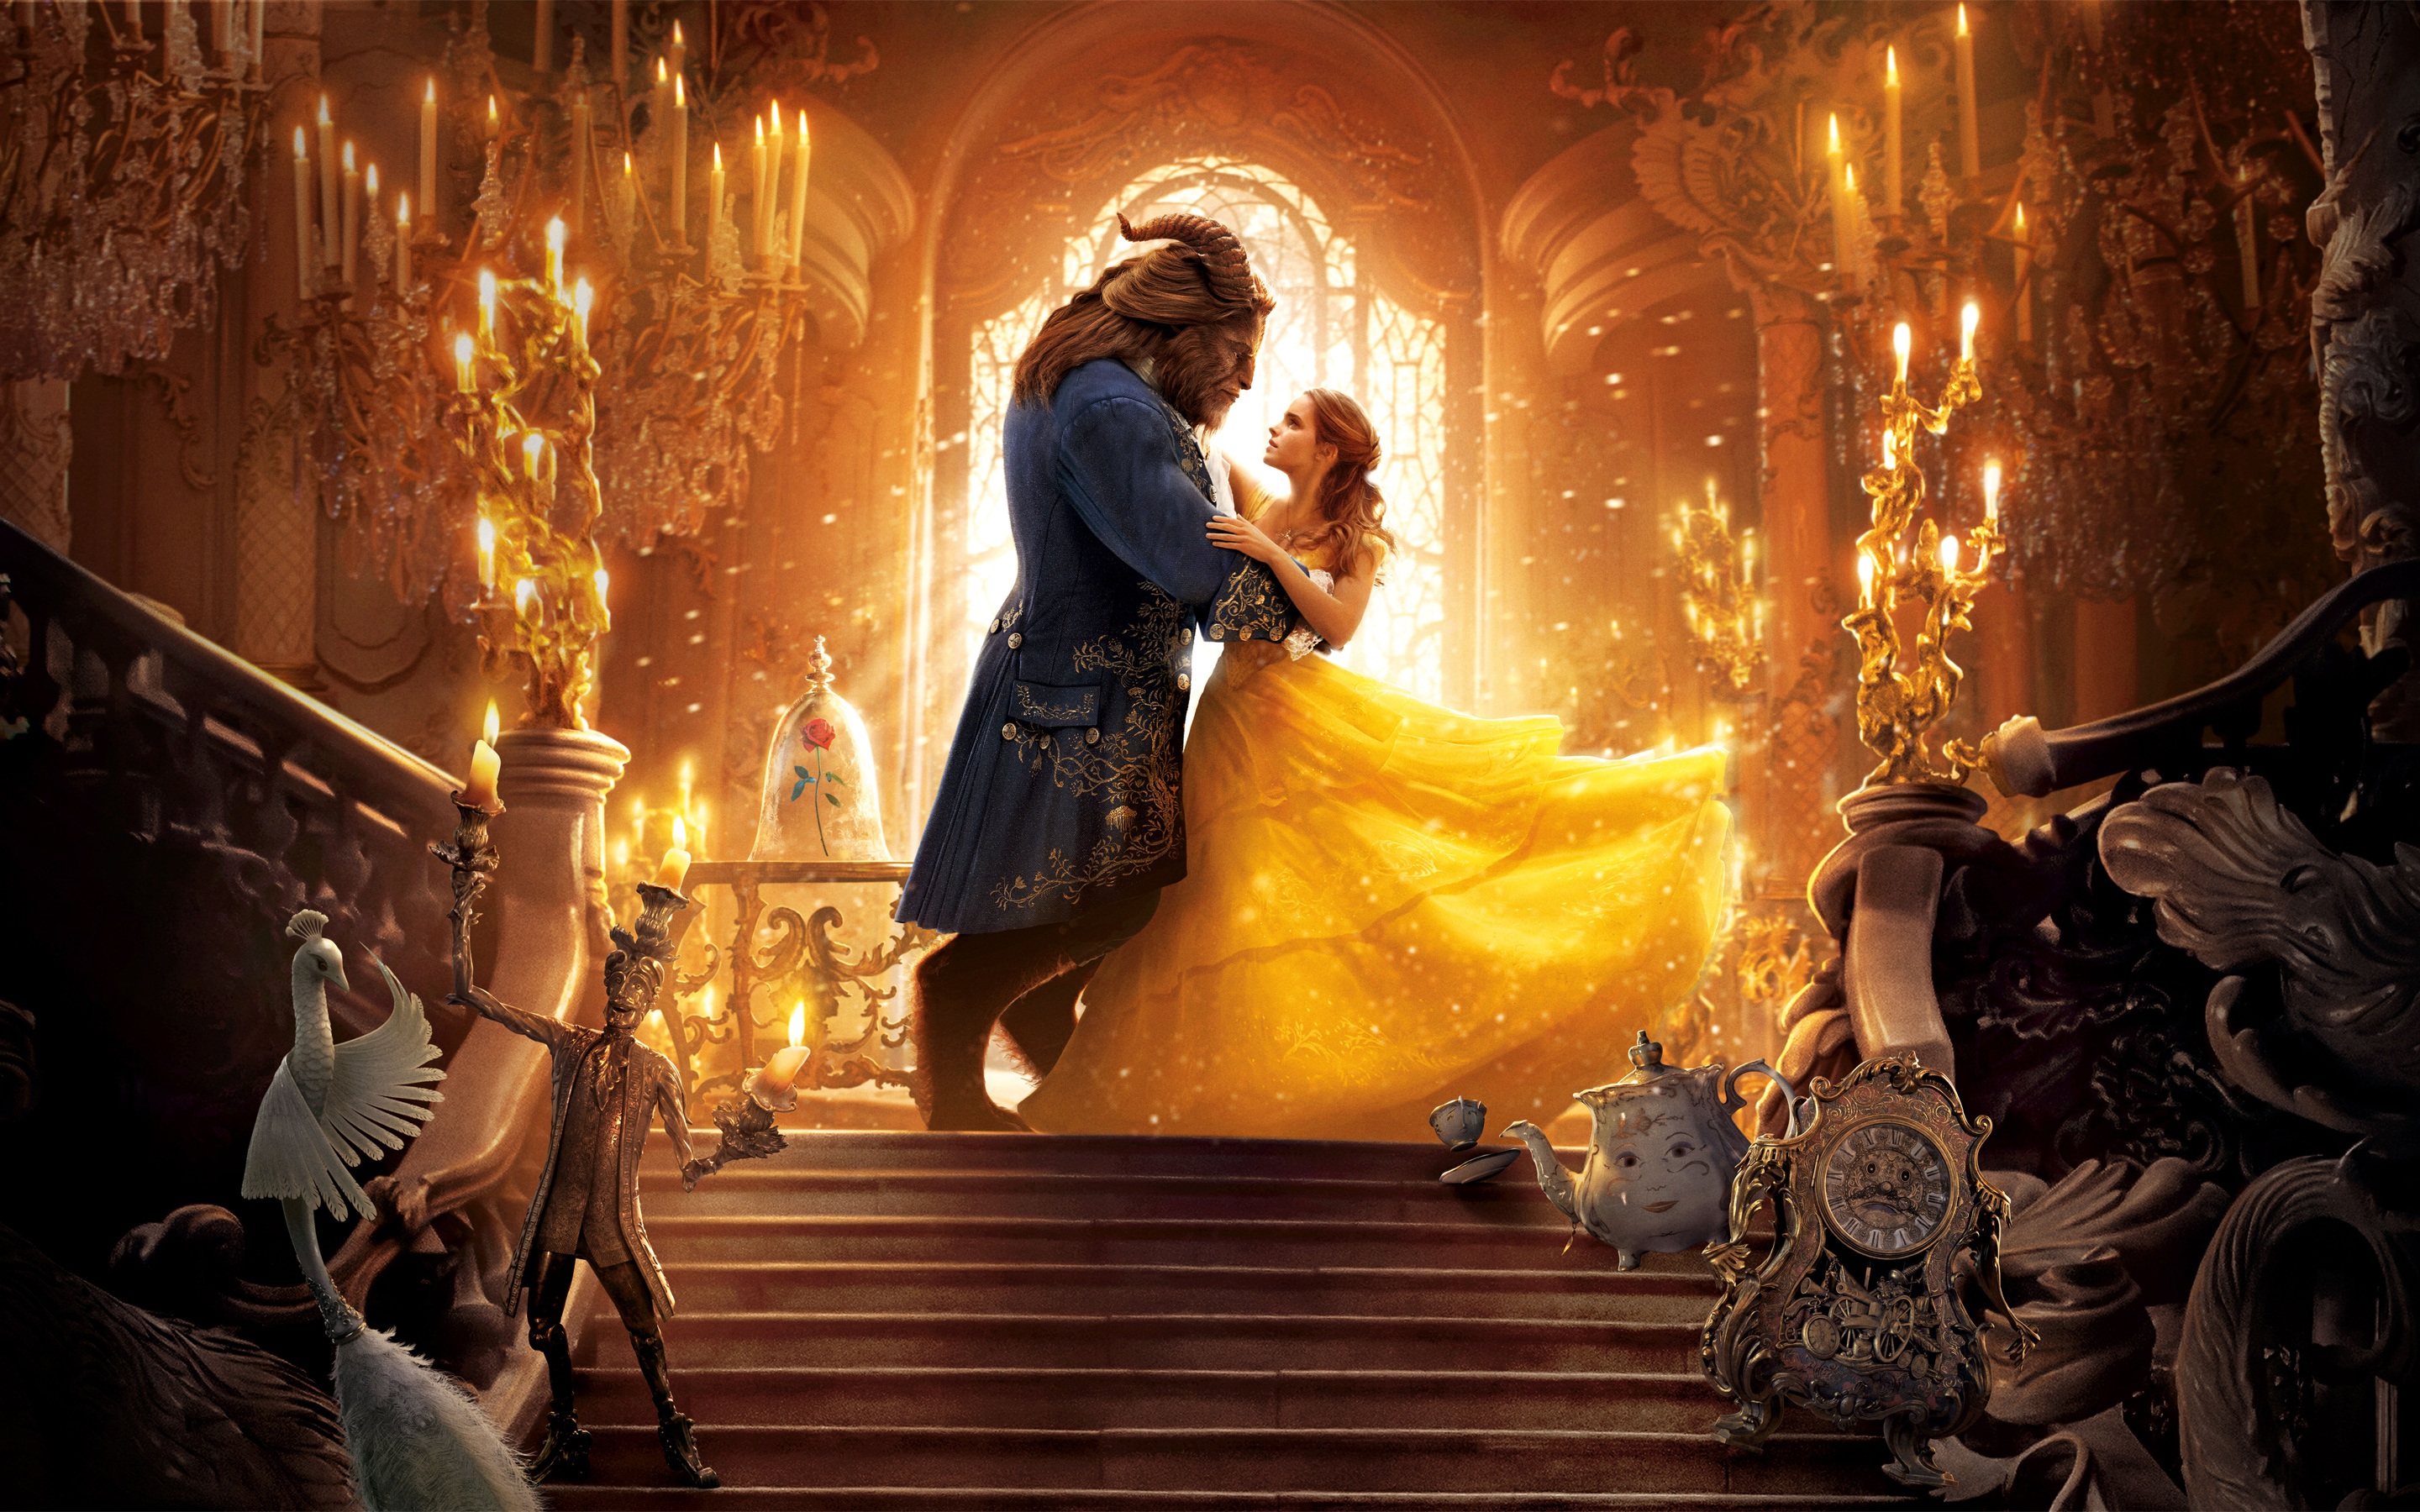 Beauty and the beast 4k 8k. обои скачать